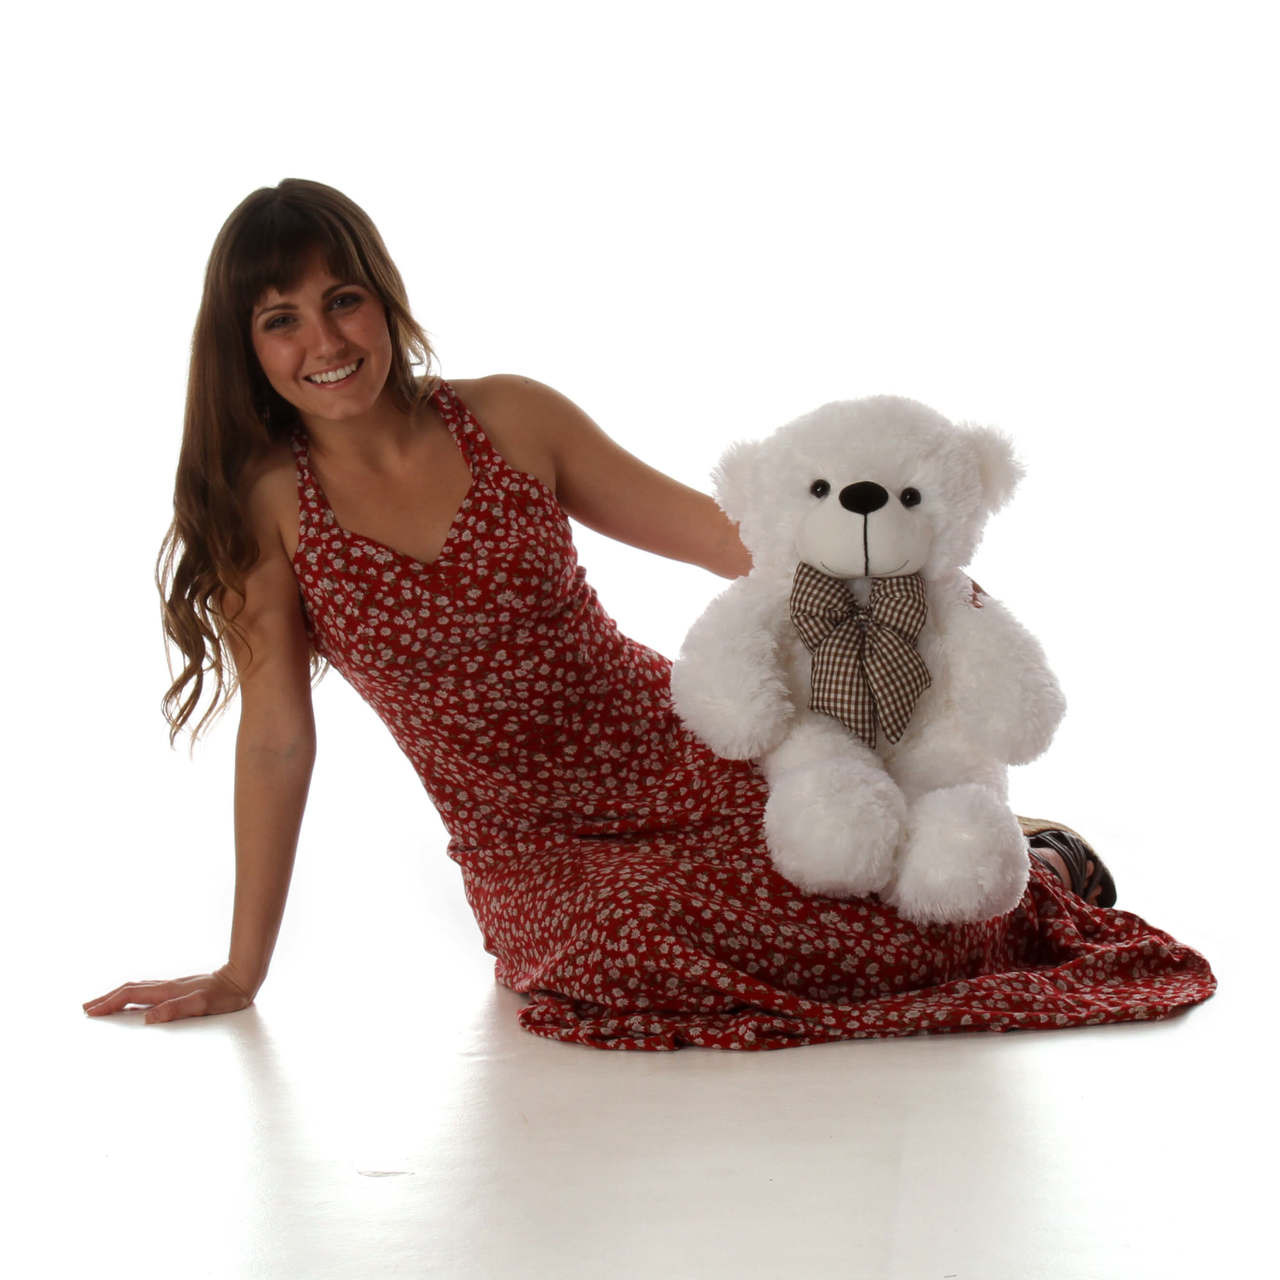 24in big white teddy bear Coco Cuddles is the perfect huggable armful of cuteness